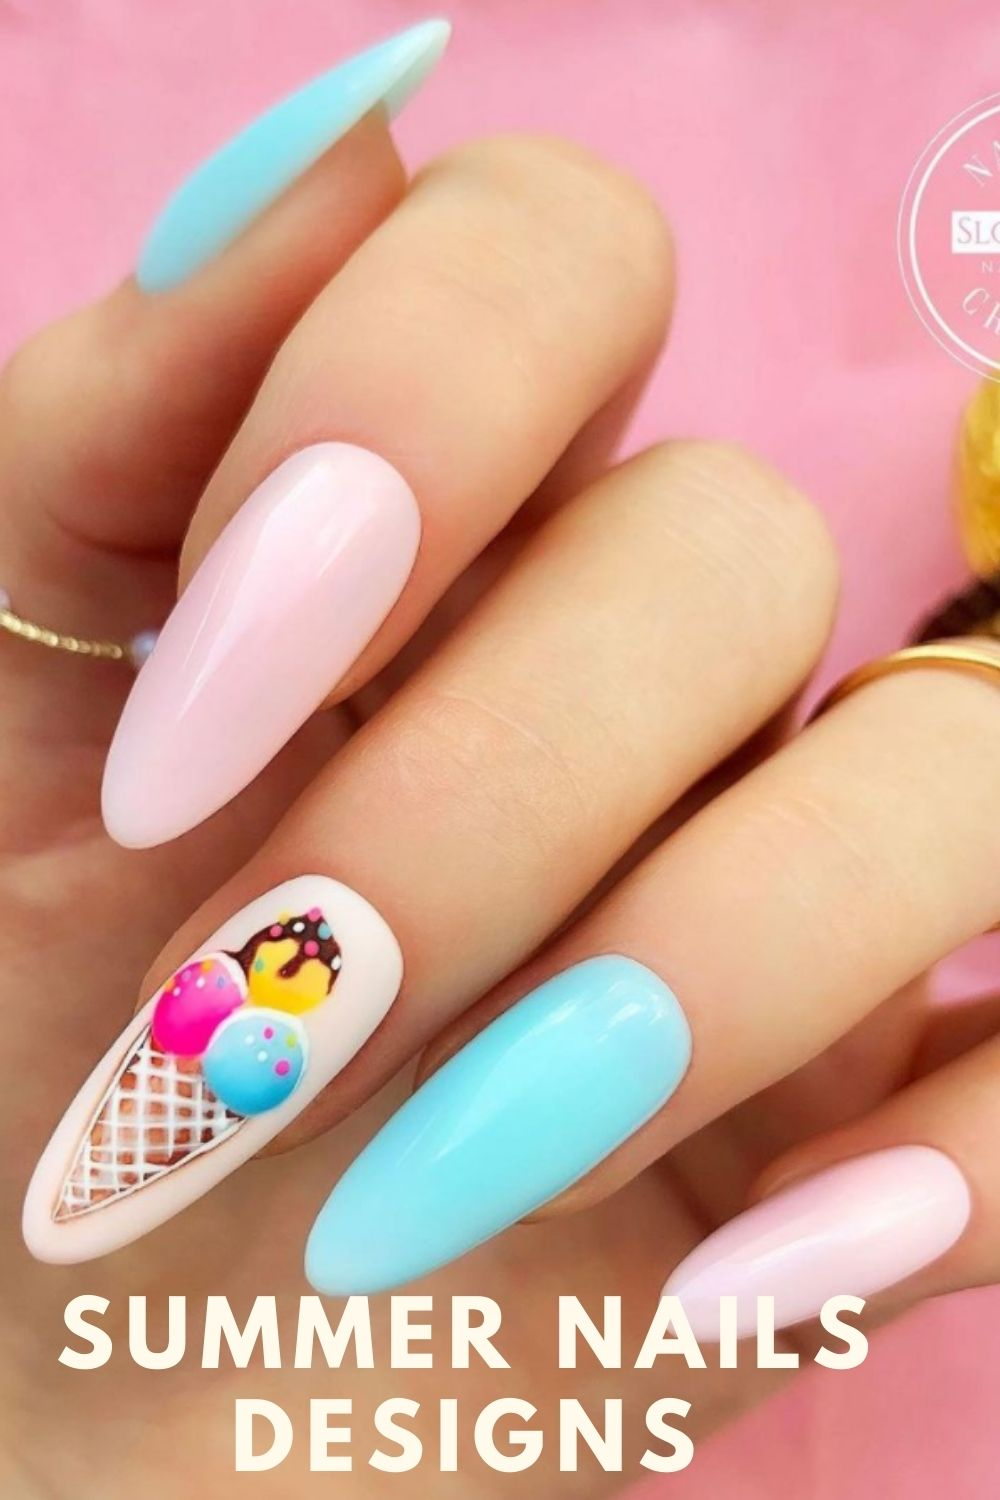 Almond nails designs with Ice cream